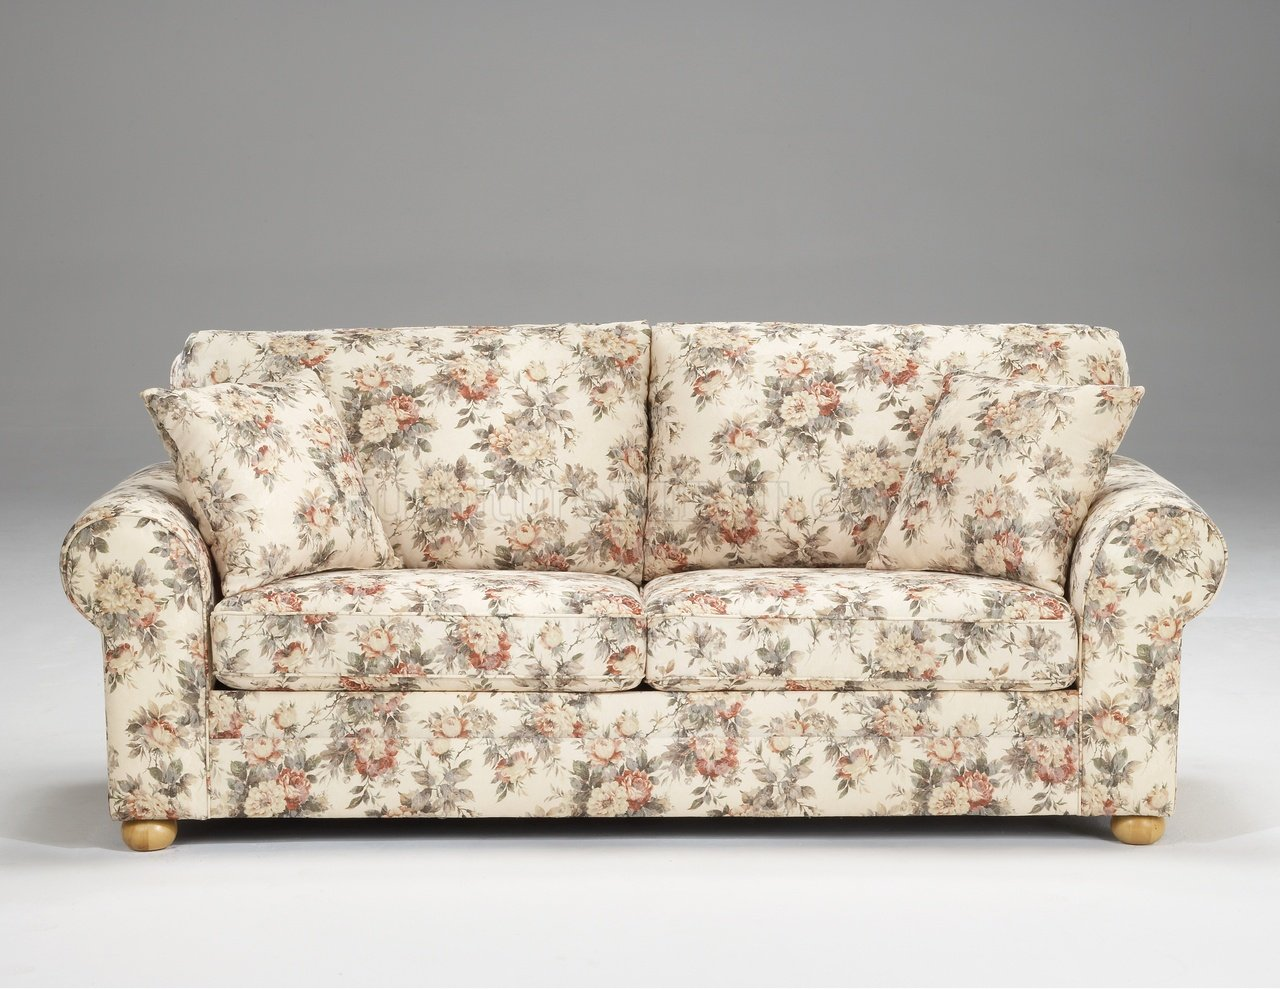 Old Patterned Loveseat Google Search Floral Couch Sofa Bed